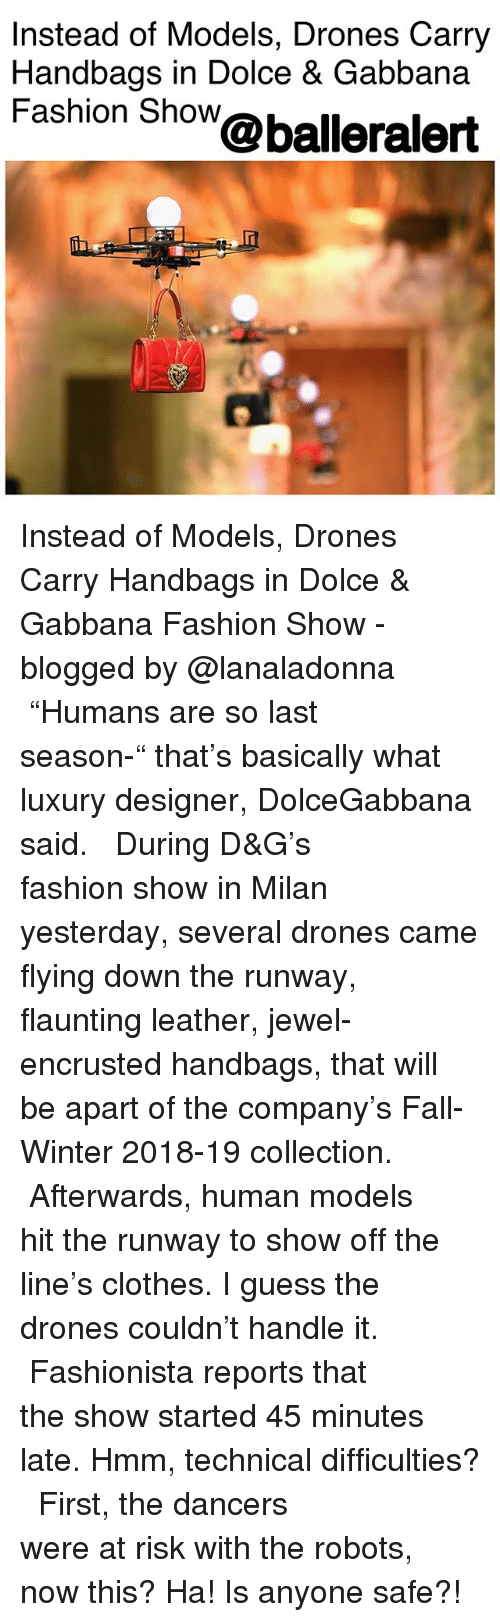 "Clothes, Fall, and Fashion: Instead of Models, Drones Carry  Handbags in Dolce & Gabbana  Fashion Show@balleralert  Tr Instead of Models, Drones Carry Handbags in Dolce & Gabbana Fashion Show - blogged by @lanaladonna ⠀⠀⠀⠀⠀⠀⠀ ⠀⠀⠀⠀⠀⠀⠀ ""Humans are so last season-"" that's basically what luxury designer, DolceGabbana said. ⠀⠀⠀⠀⠀⠀⠀ ⠀⠀⠀⠀⠀⠀⠀ During D&G's fashion show in Milan yesterday, several drones came flying down the runway, flaunting leather, jewel-encrusted handbags, that will be apart of the company's Fall-Winter 2018-19 collection. ⠀⠀⠀⠀⠀⠀⠀ ⠀⠀⠀⠀⠀⠀⠀ Afterwards, human models hit the runway to show off the line's clothes. I guess the drones couldn't handle it. ⠀⠀⠀⠀⠀⠀⠀ ⠀⠀⠀⠀⠀⠀⠀ Fashionista reports that the show started 45 minutes late. Hmm, technical difficulties? ⠀⠀⠀⠀⠀⠀⠀ ⠀⠀⠀⠀⠀⠀⠀ First, the dancers were at risk with the robots, now this? Ha! Is anyone safe?!"